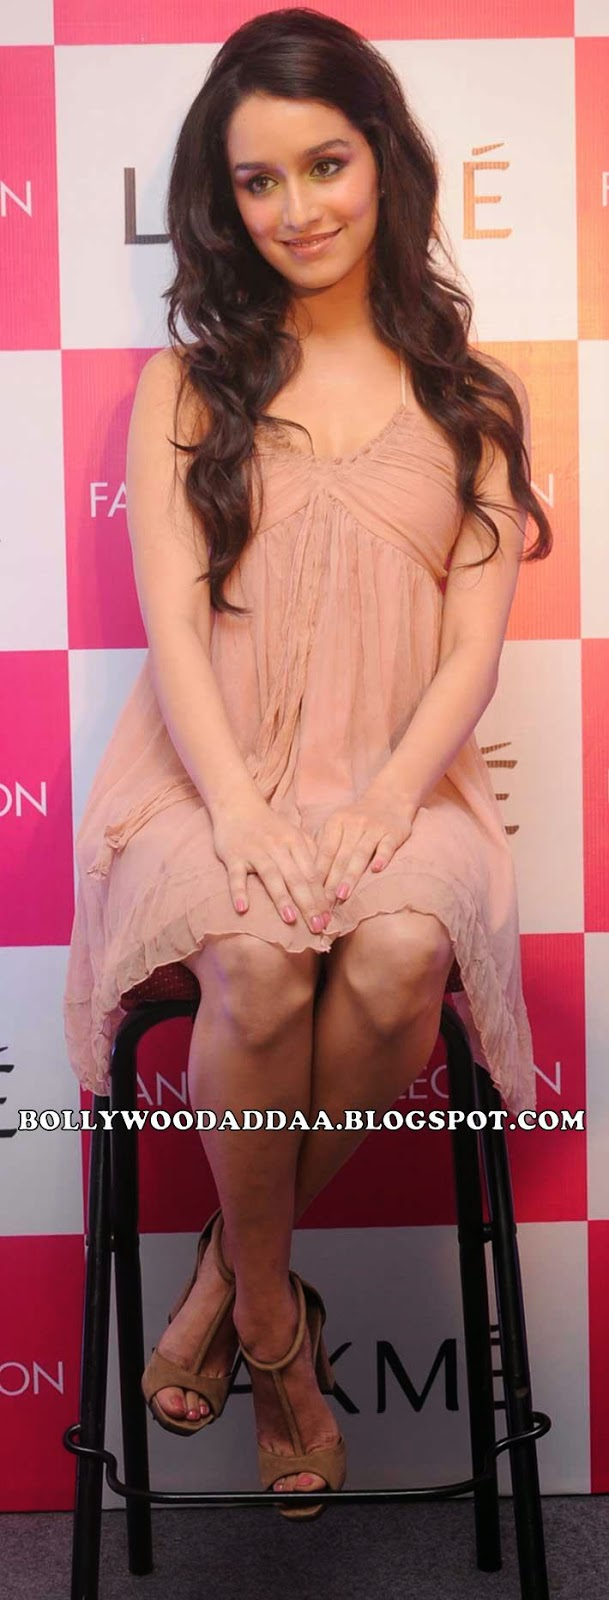 Shraddha Kapoor exposing her sexy thighs in peach color mini skirt sitting cross-leged at an event redhot hot pics hd